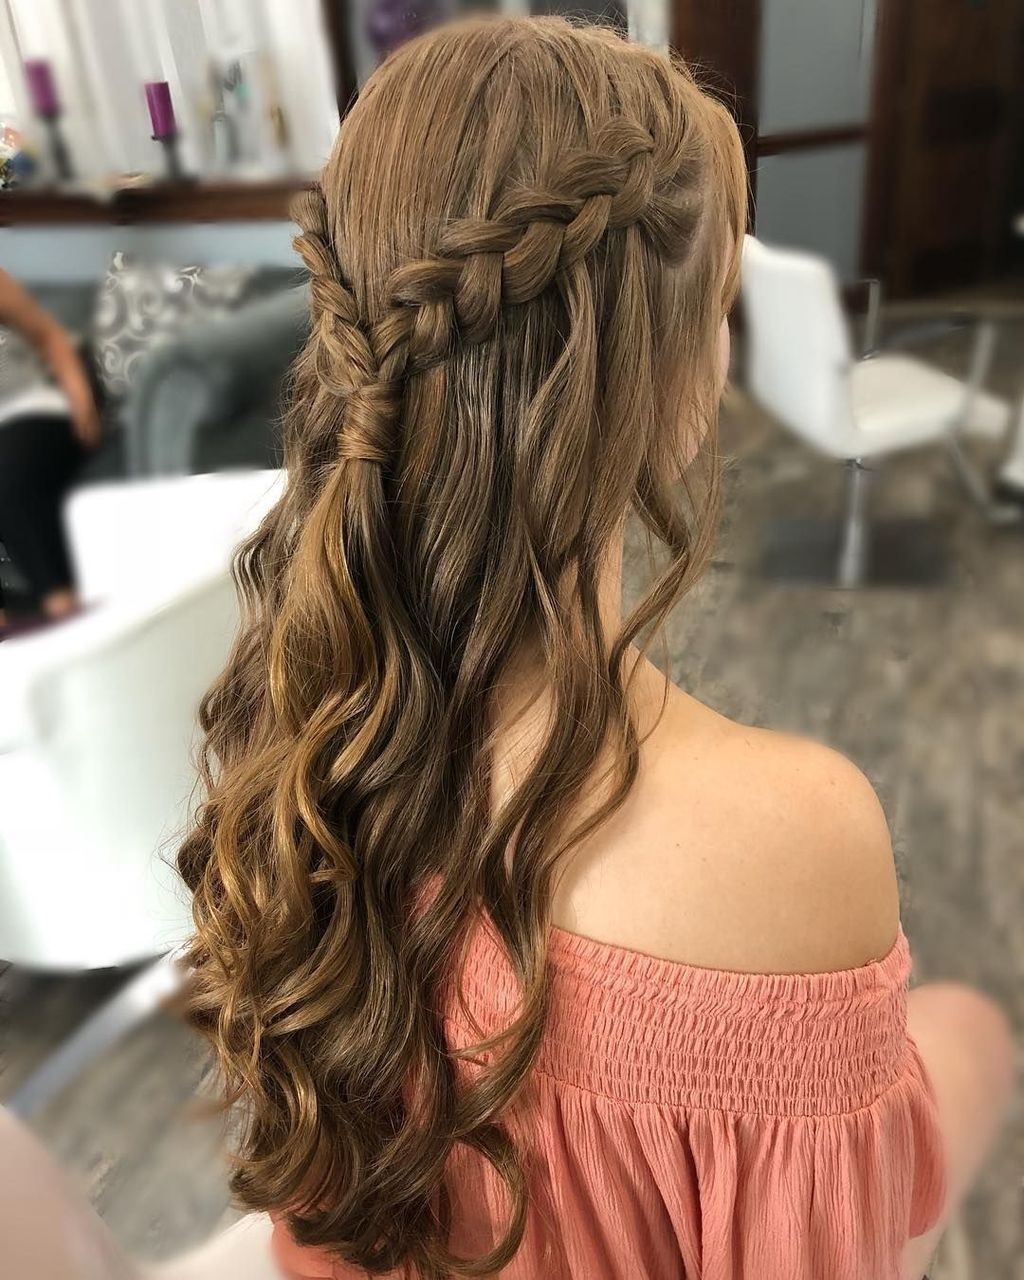 38 Gorgeous Prom Hairstyles Ideas For Women You Must Try - ADDICFASHION